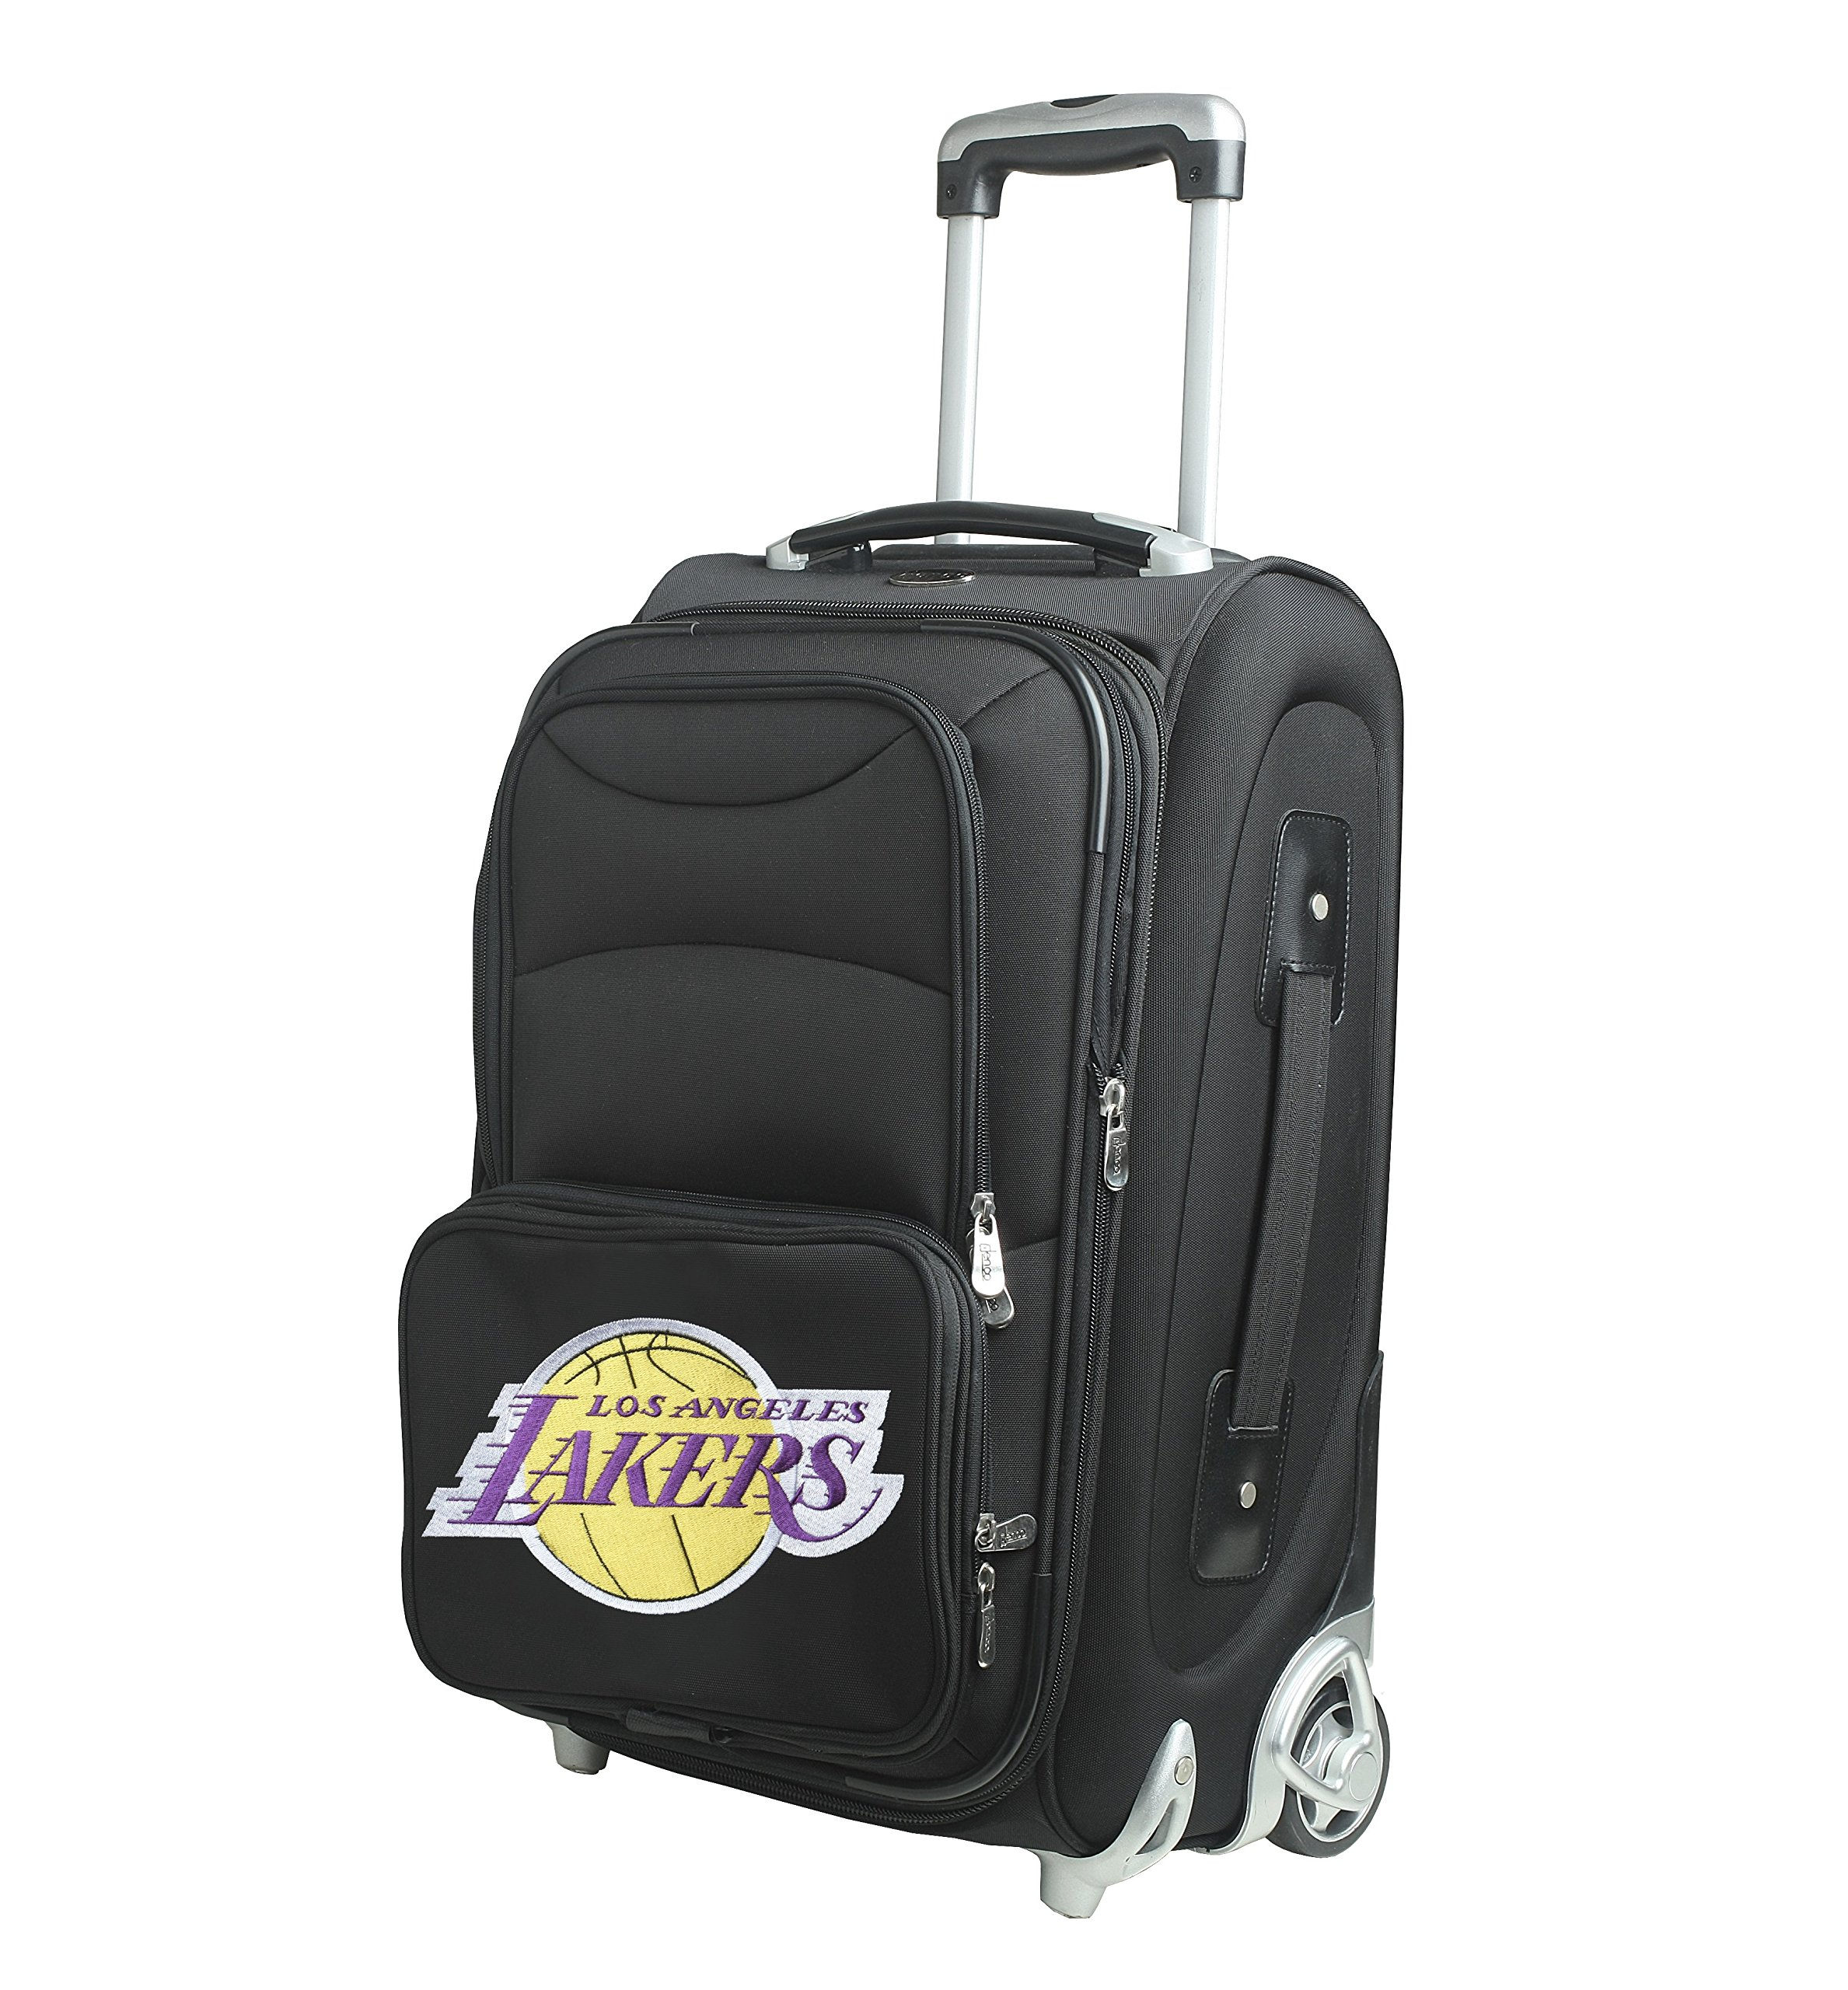 NBA Los Angeles Lakers In-Line Skate Wheel Carry-On Luggage, 21-Inch, Black